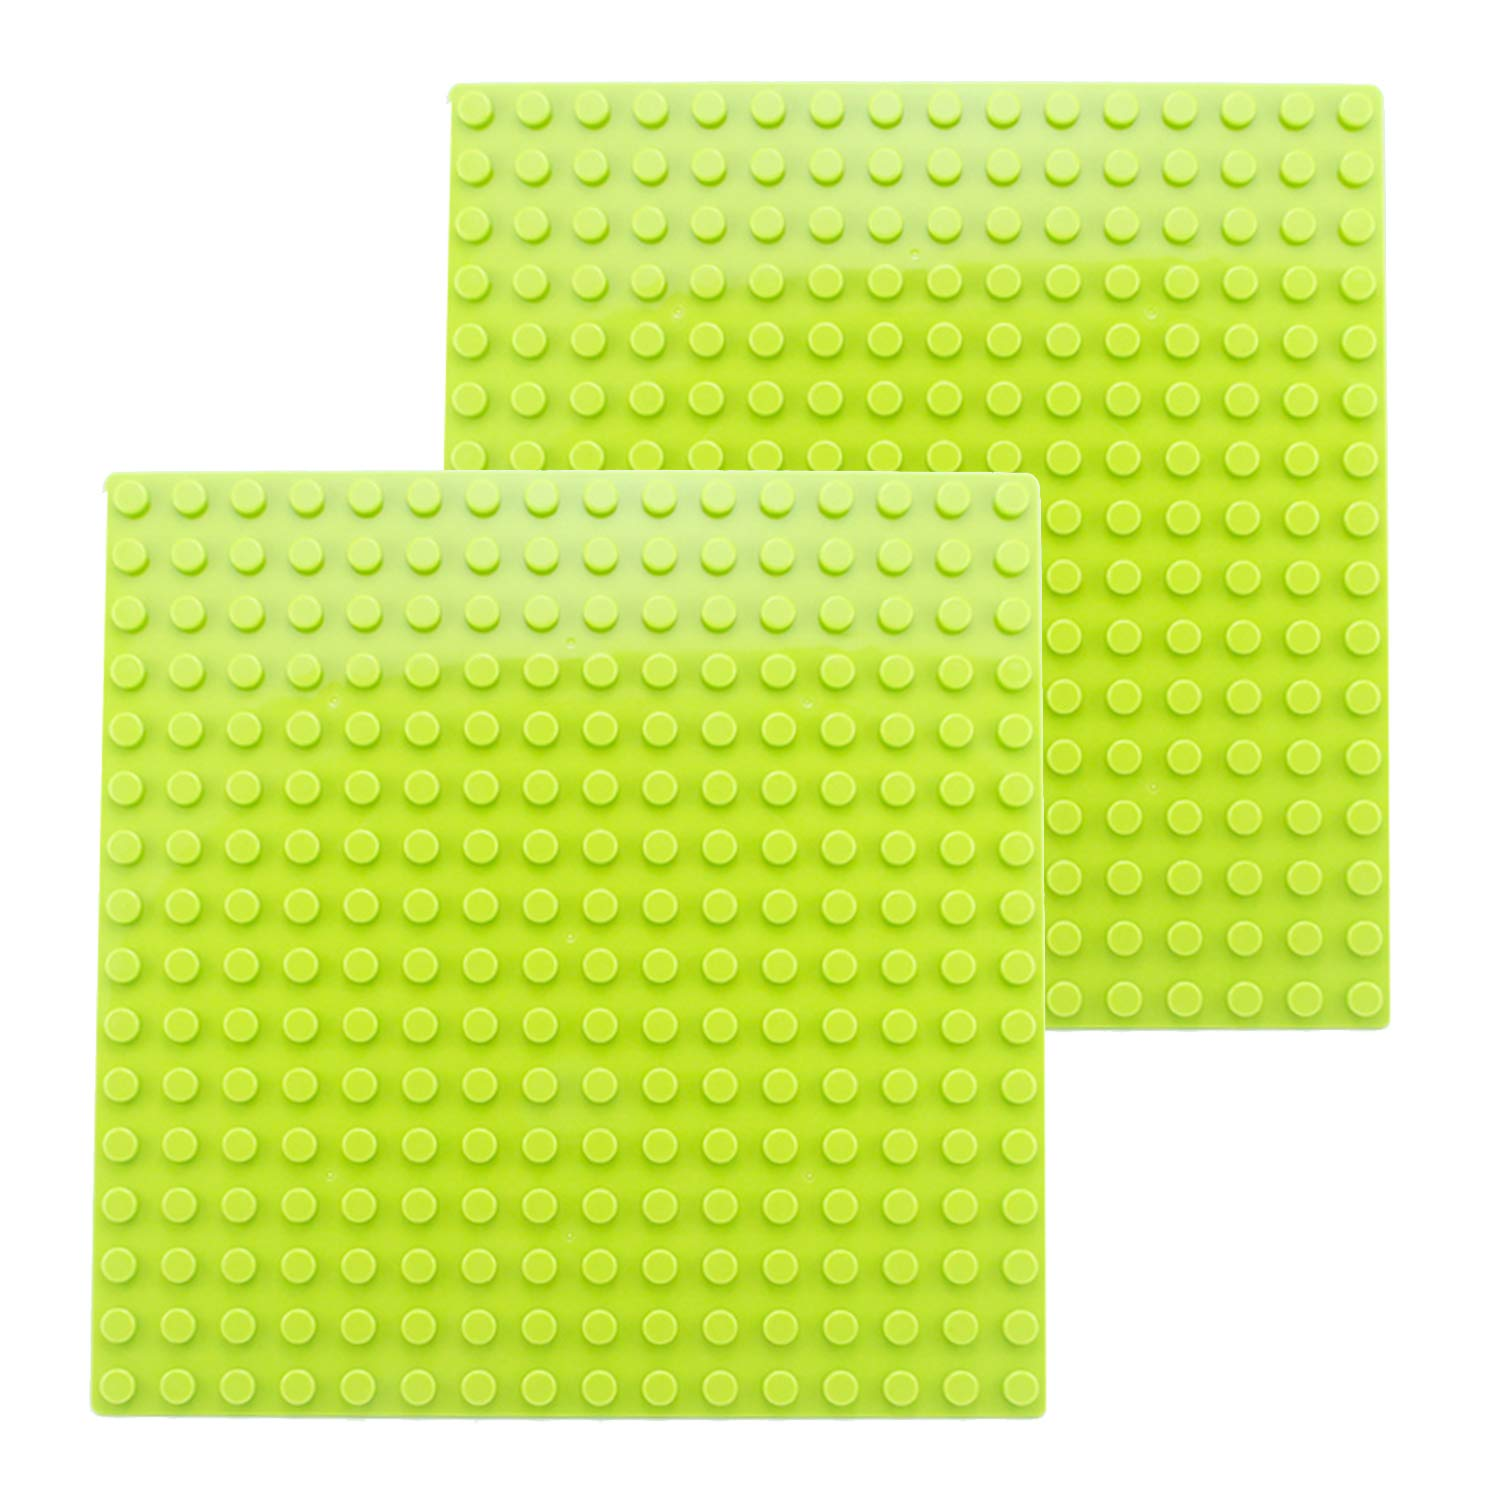 BOROLA Classic 10 x 10 Base Block Plate Compatible with All Major Brands Duplo-Style Bricks Light Green 2Pcs Only with Bigger Size Blocks